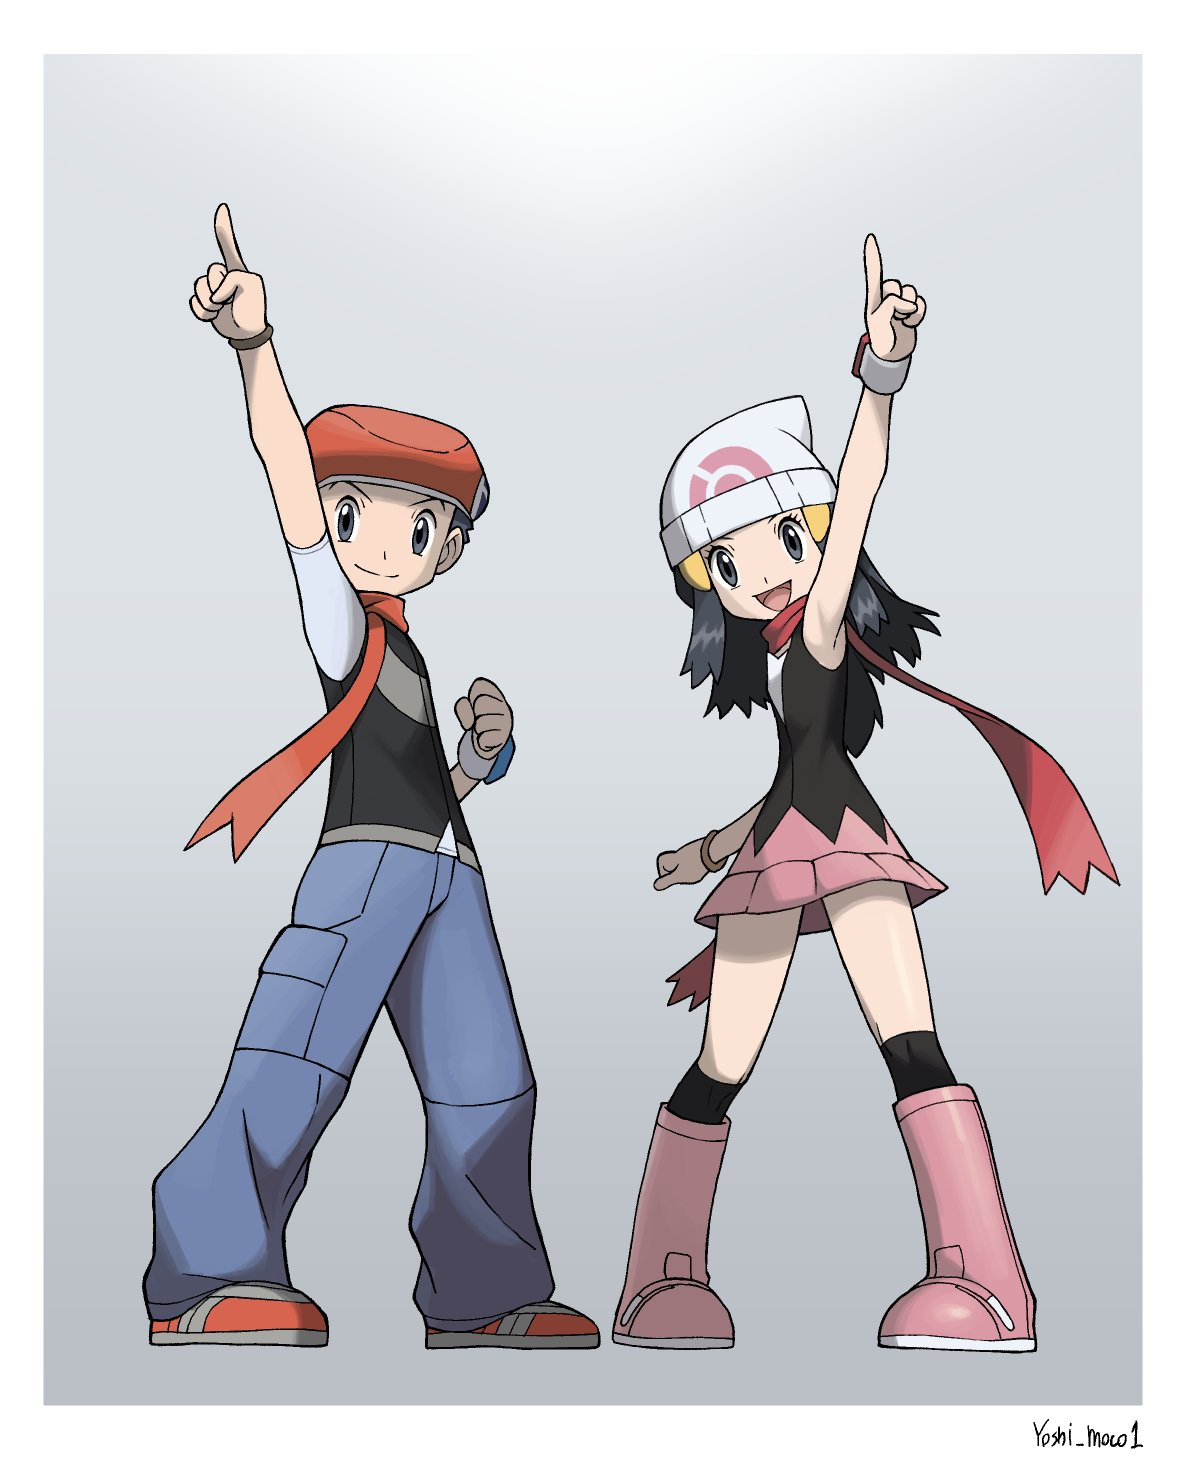 1boy 1girl :d arm_up artist_name beanie black_hair black_legwear boots border bracelet clenched_hand dawn_(pokemon) eyelashes grey_eyes grey_pants hair_ornament hairclip hat highres index_finger_raised jewelry long_hair lucas_(pokemon) open_mouth over-kneehighs pants pokemon pokemon_(game) pokemon_dppt red_scarf scarf shoes short_sleeves smile thigh-highs tongue white_border white_headwear yoshi_(moco1)